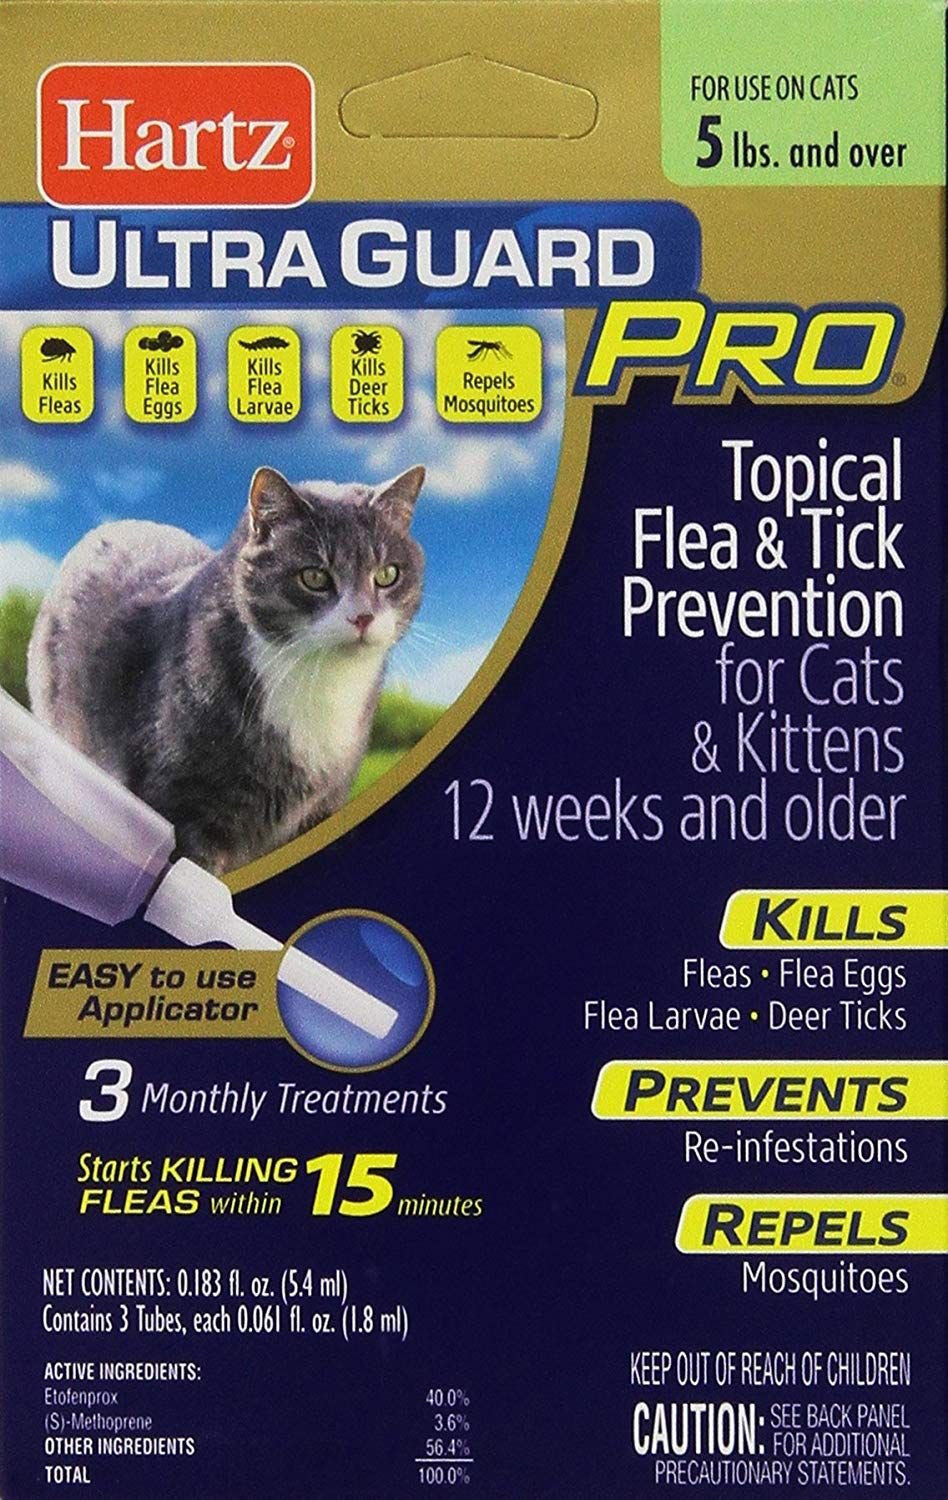 Hartz Ultraguard Pro Topical Flea And Tick Prevention For Cats And Kittens 3 Monthly Treatments Very Nice Of Your Cat Fleas Flea And Tick Tick Prevention